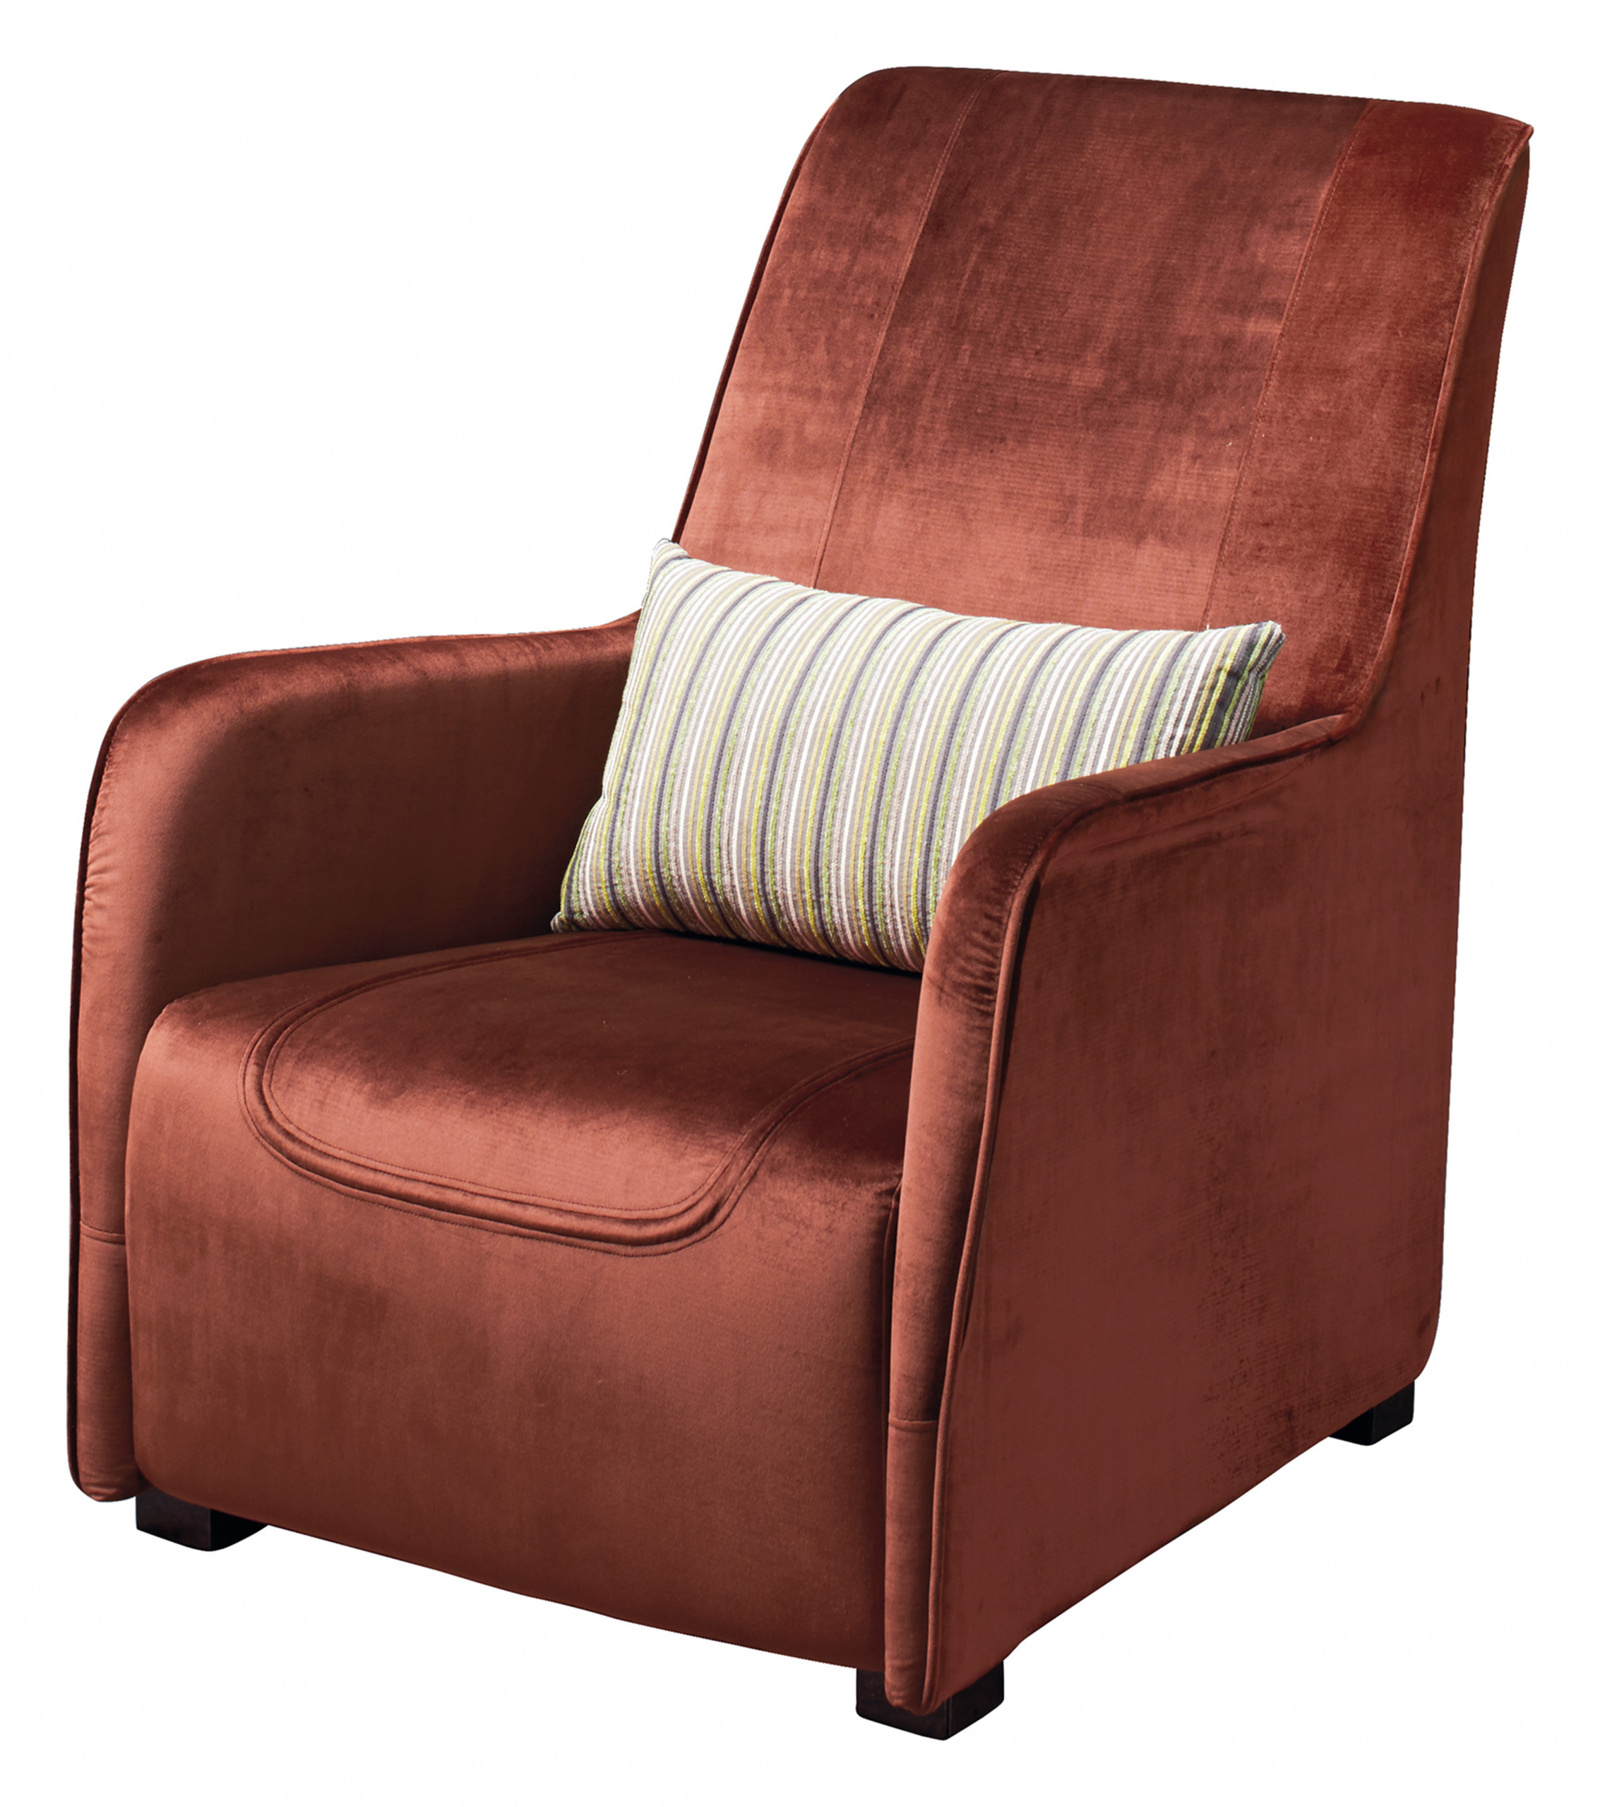 Дизайнерское кресло 917 Oleander Accent Chair BREEZE DECORATION